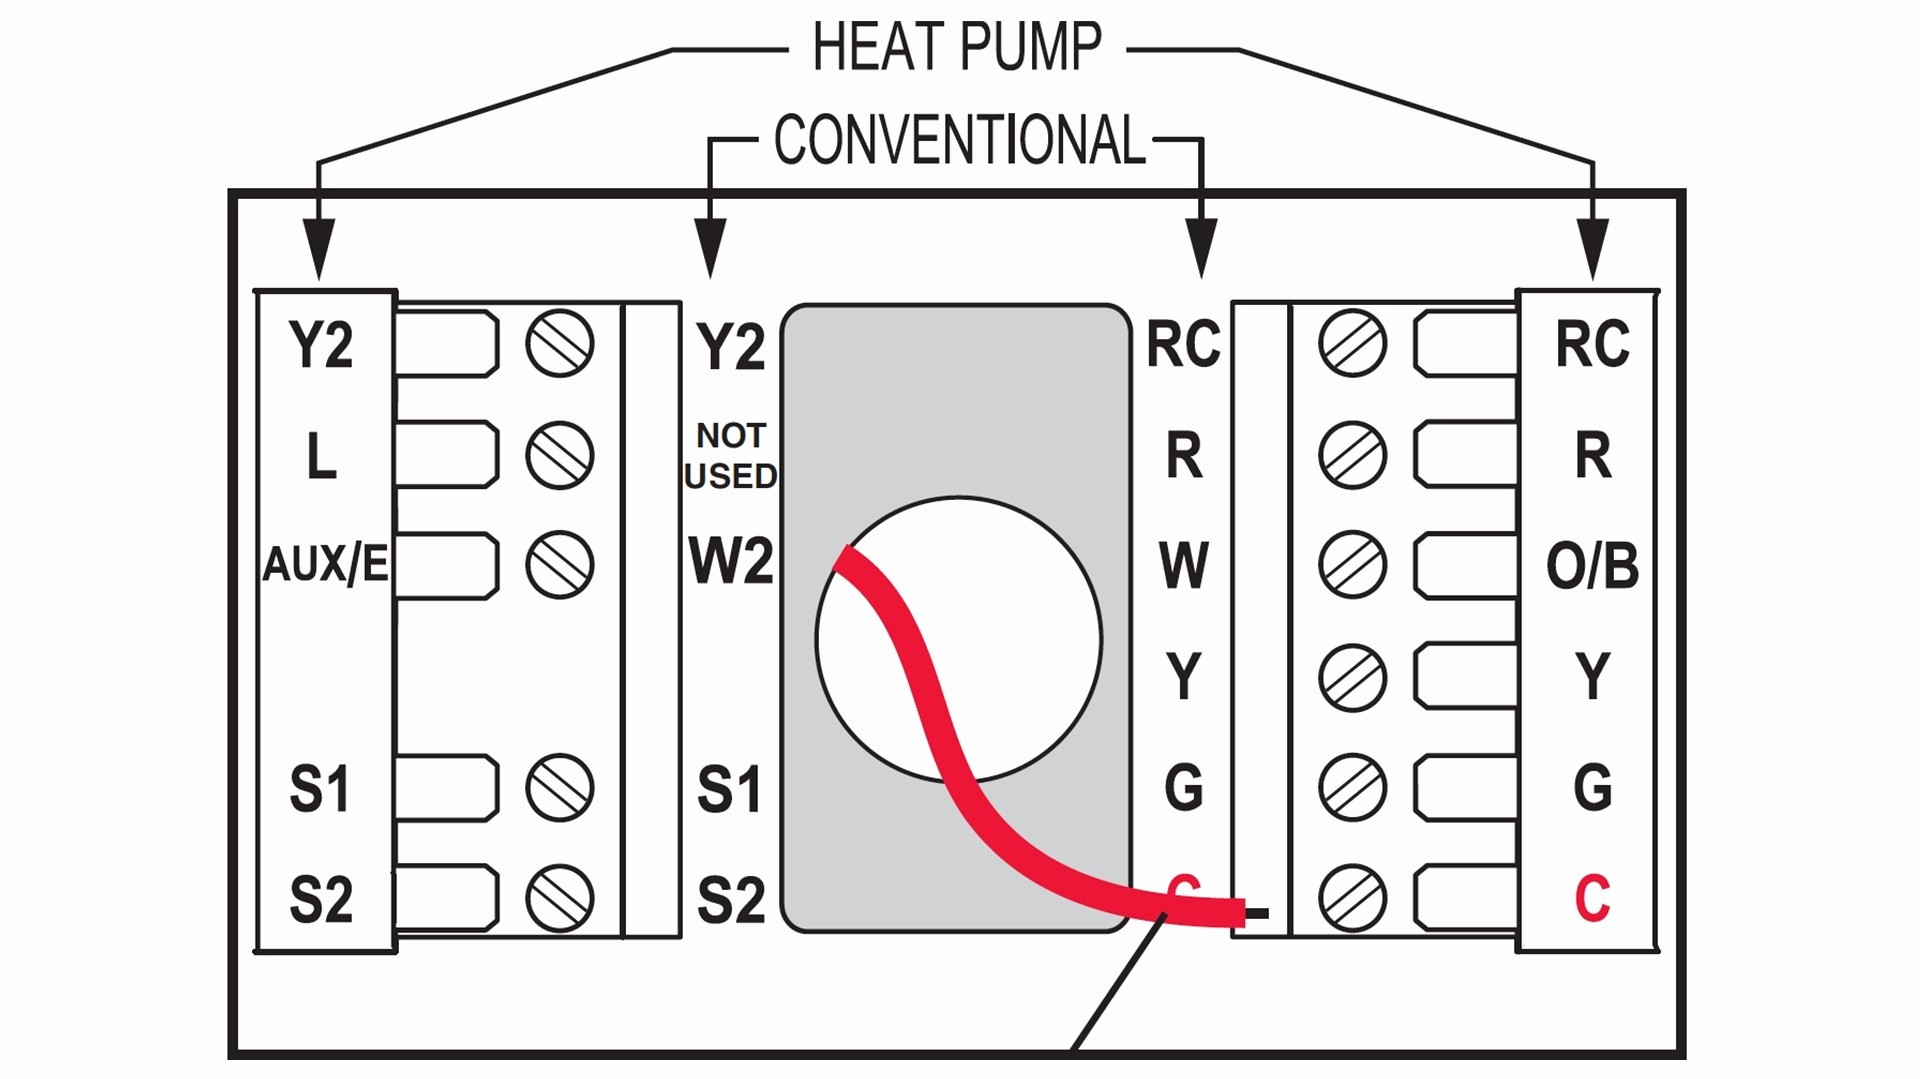 WRG-6251] White Rodgers Heat Pump Thermostat Wiring Diagram